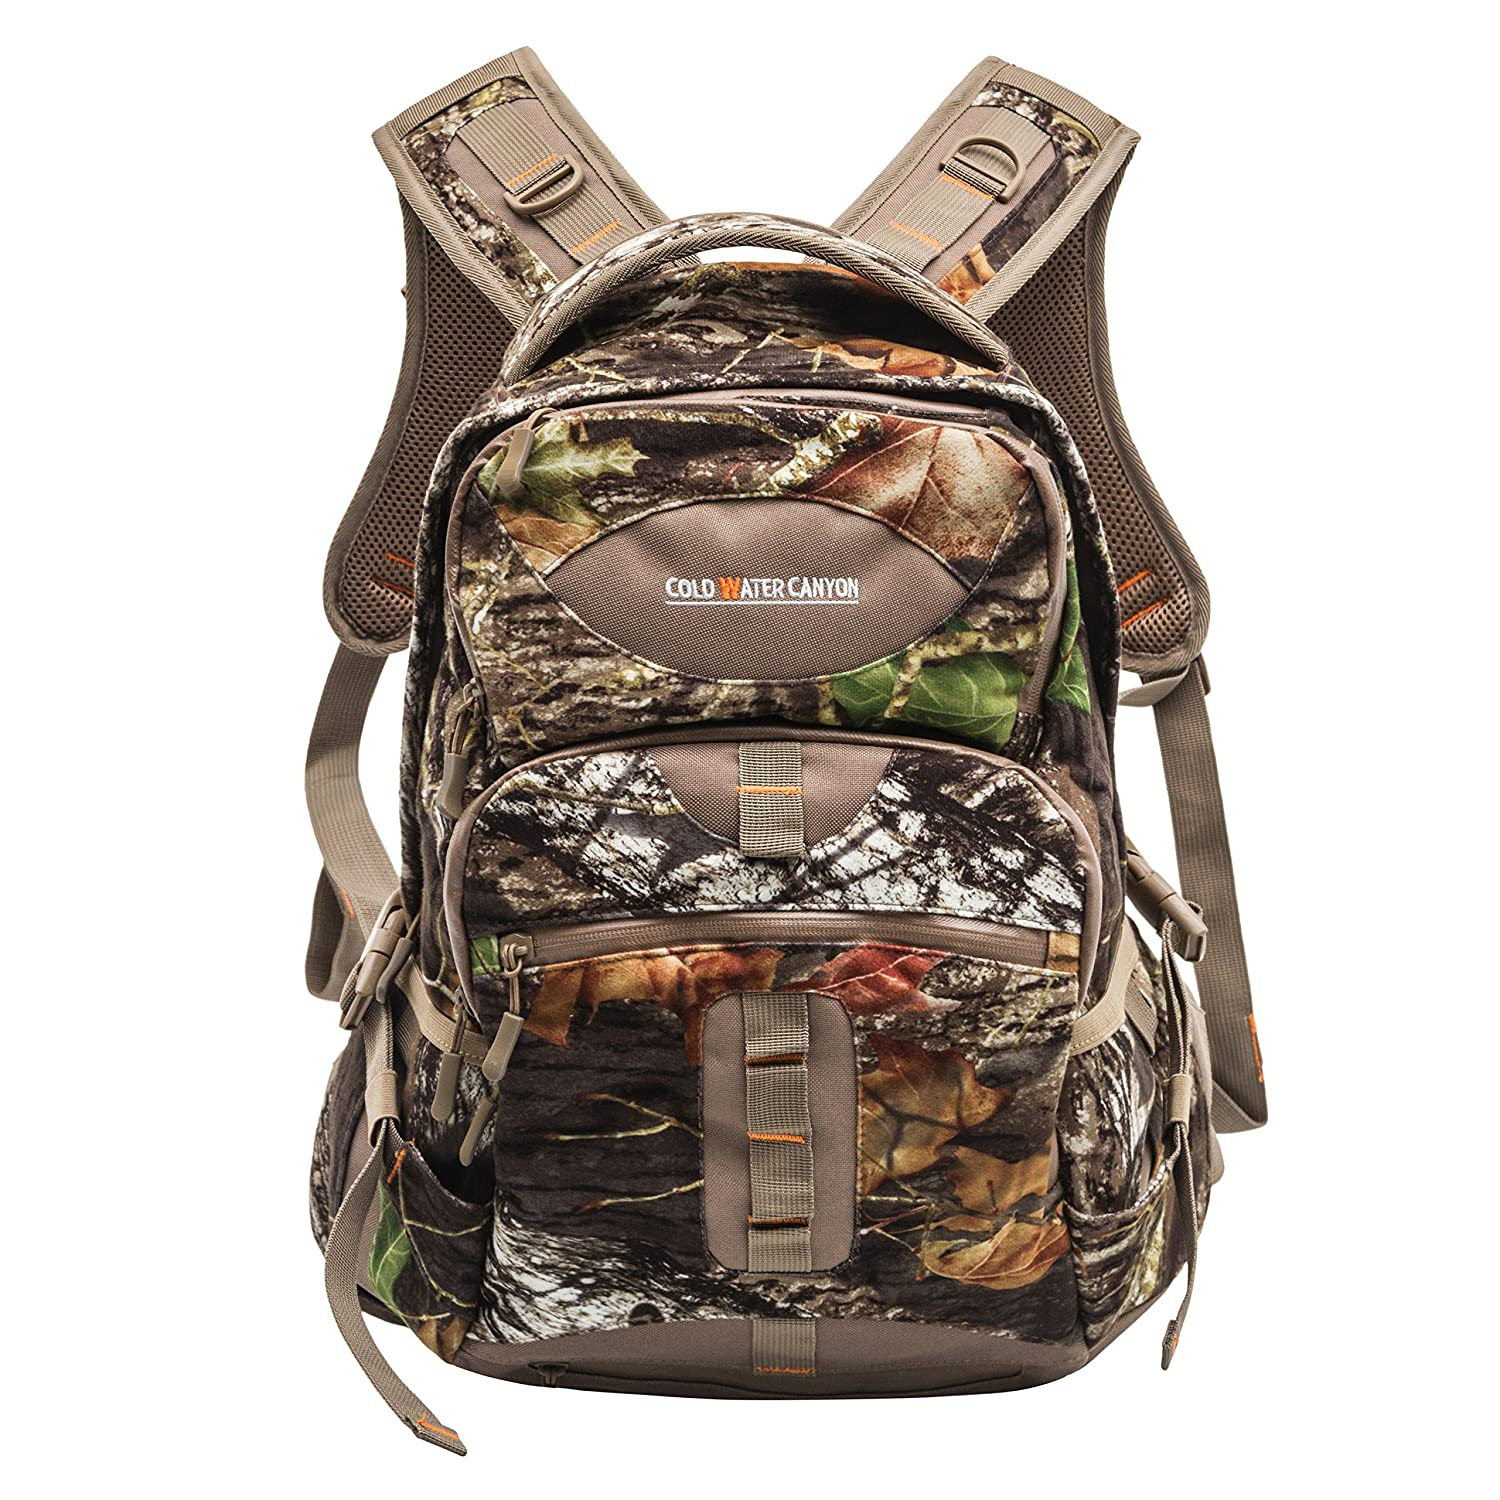 Mossy Oak Camouflage Long Strapped BackPack with Water Resistant Zippers and Bonus Rain Cover Cold Water Canyon